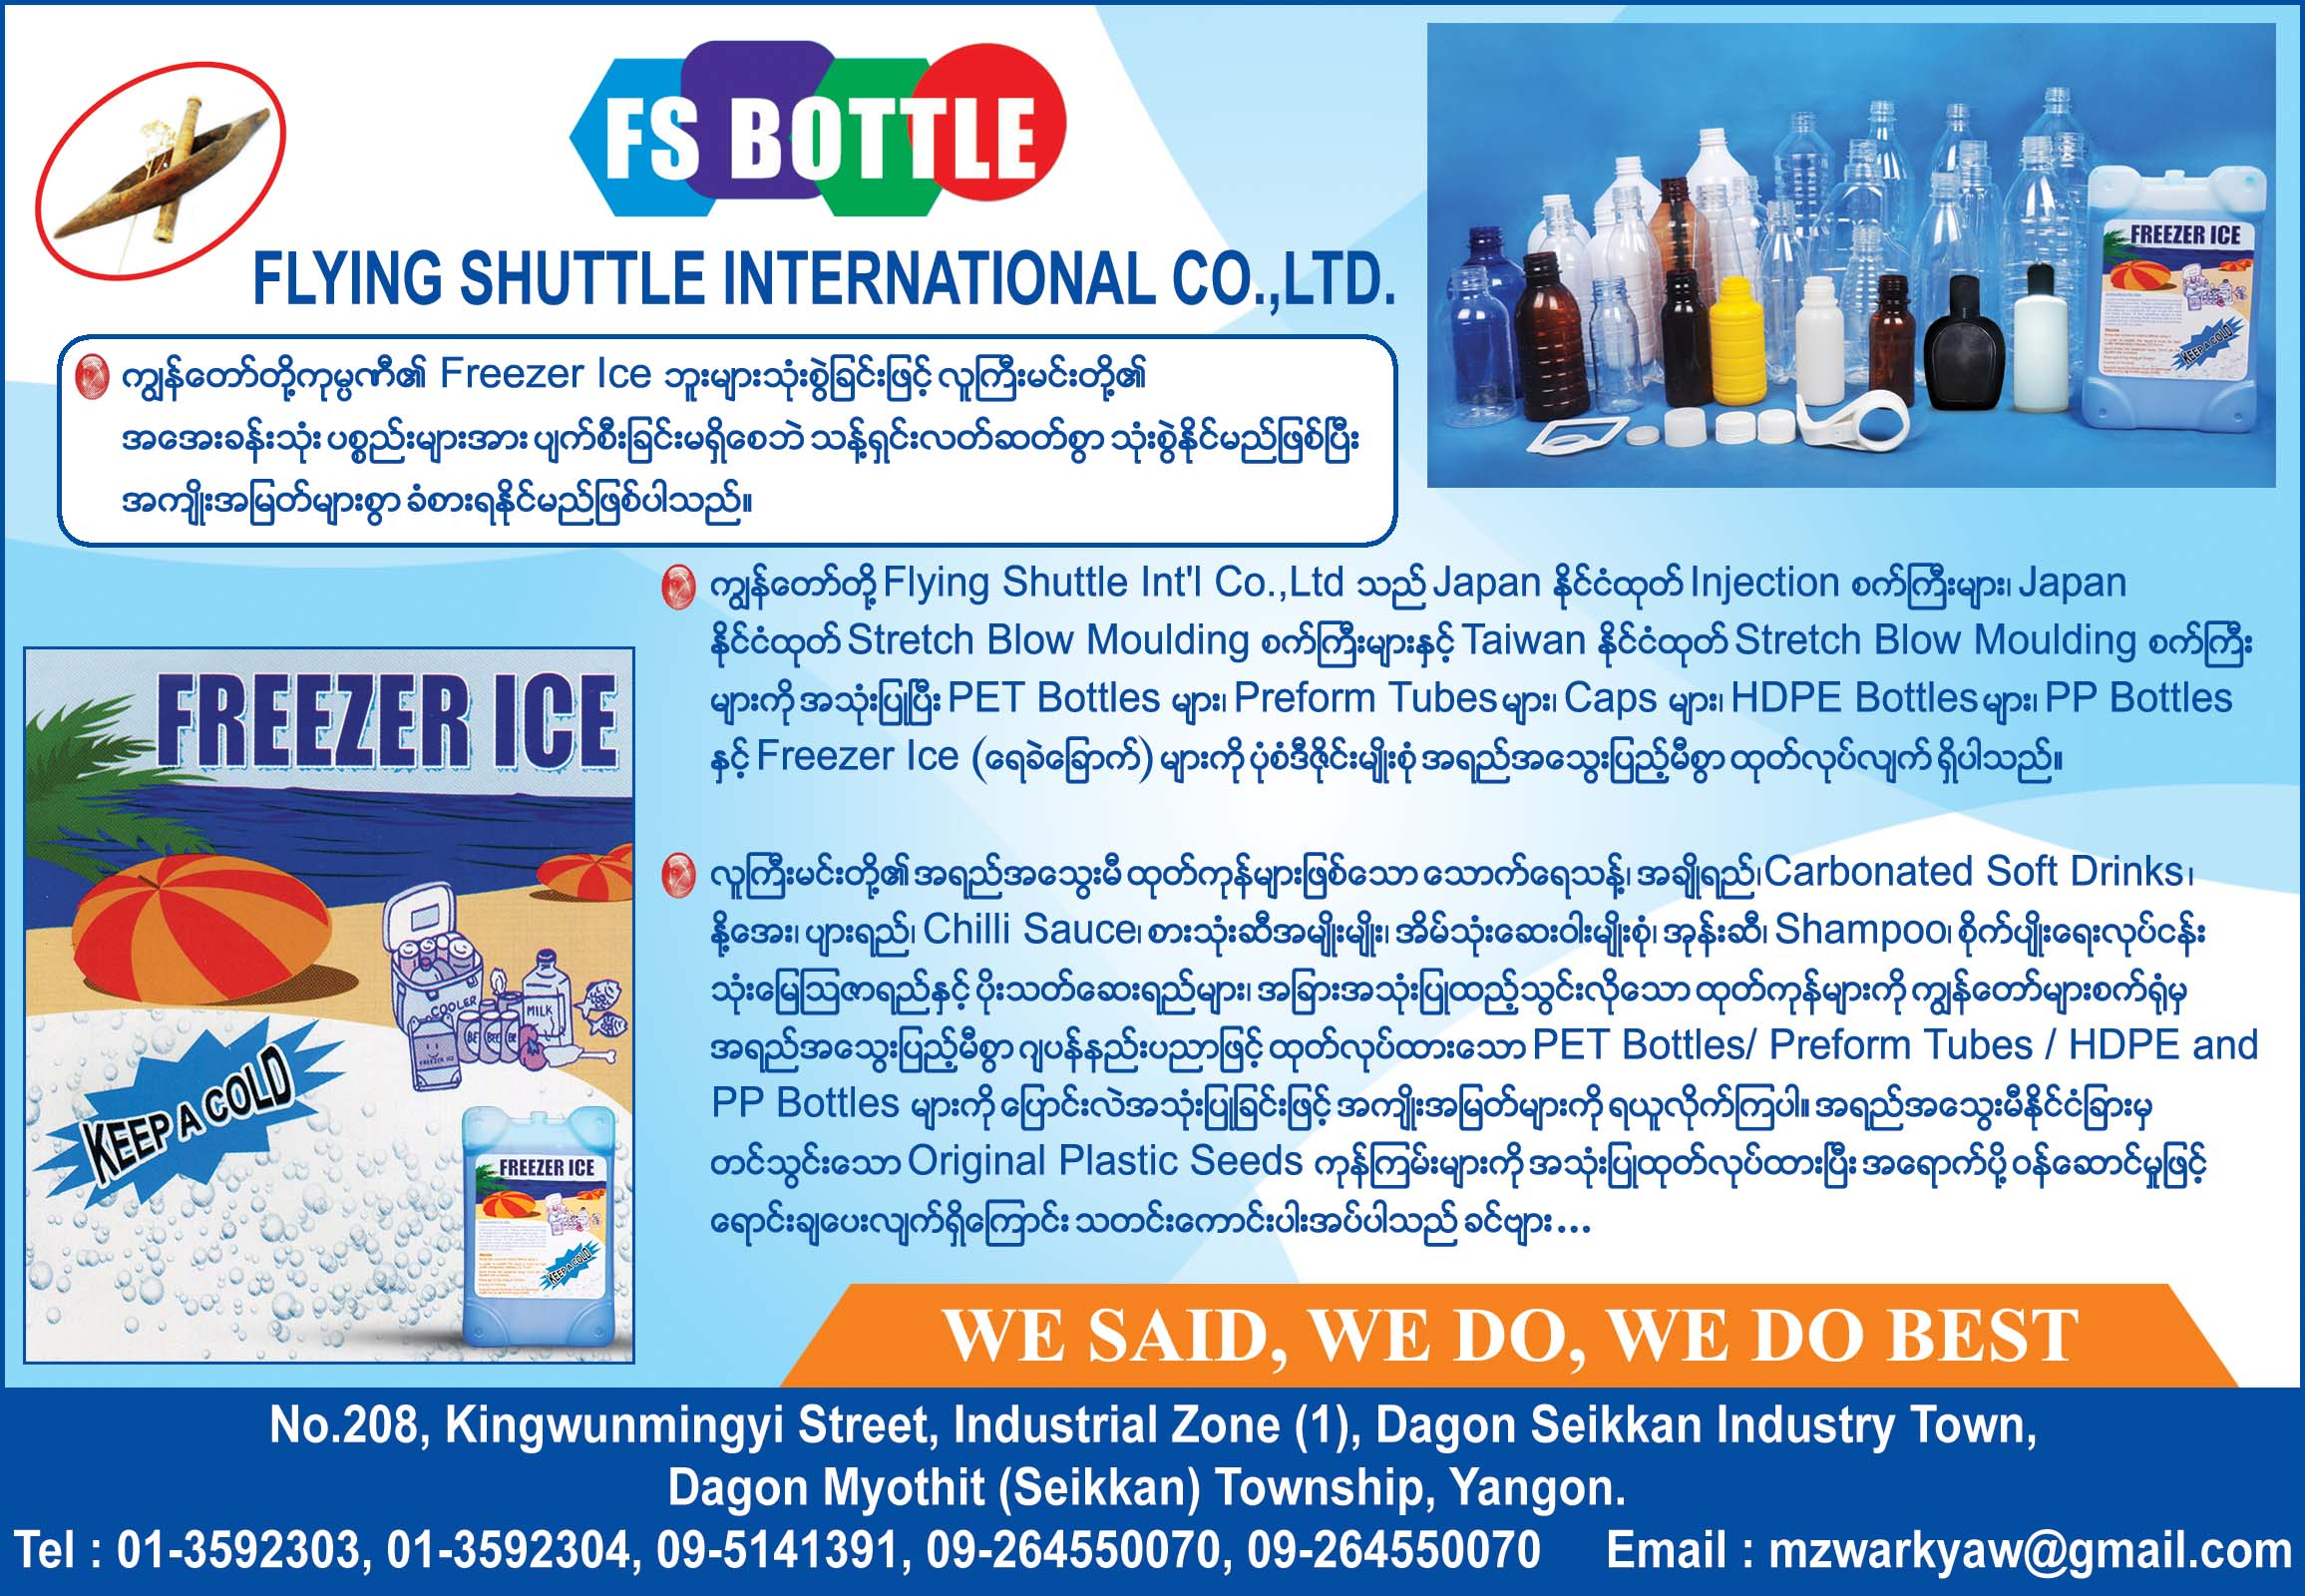 Flying Shuttle International Co., Ltd.